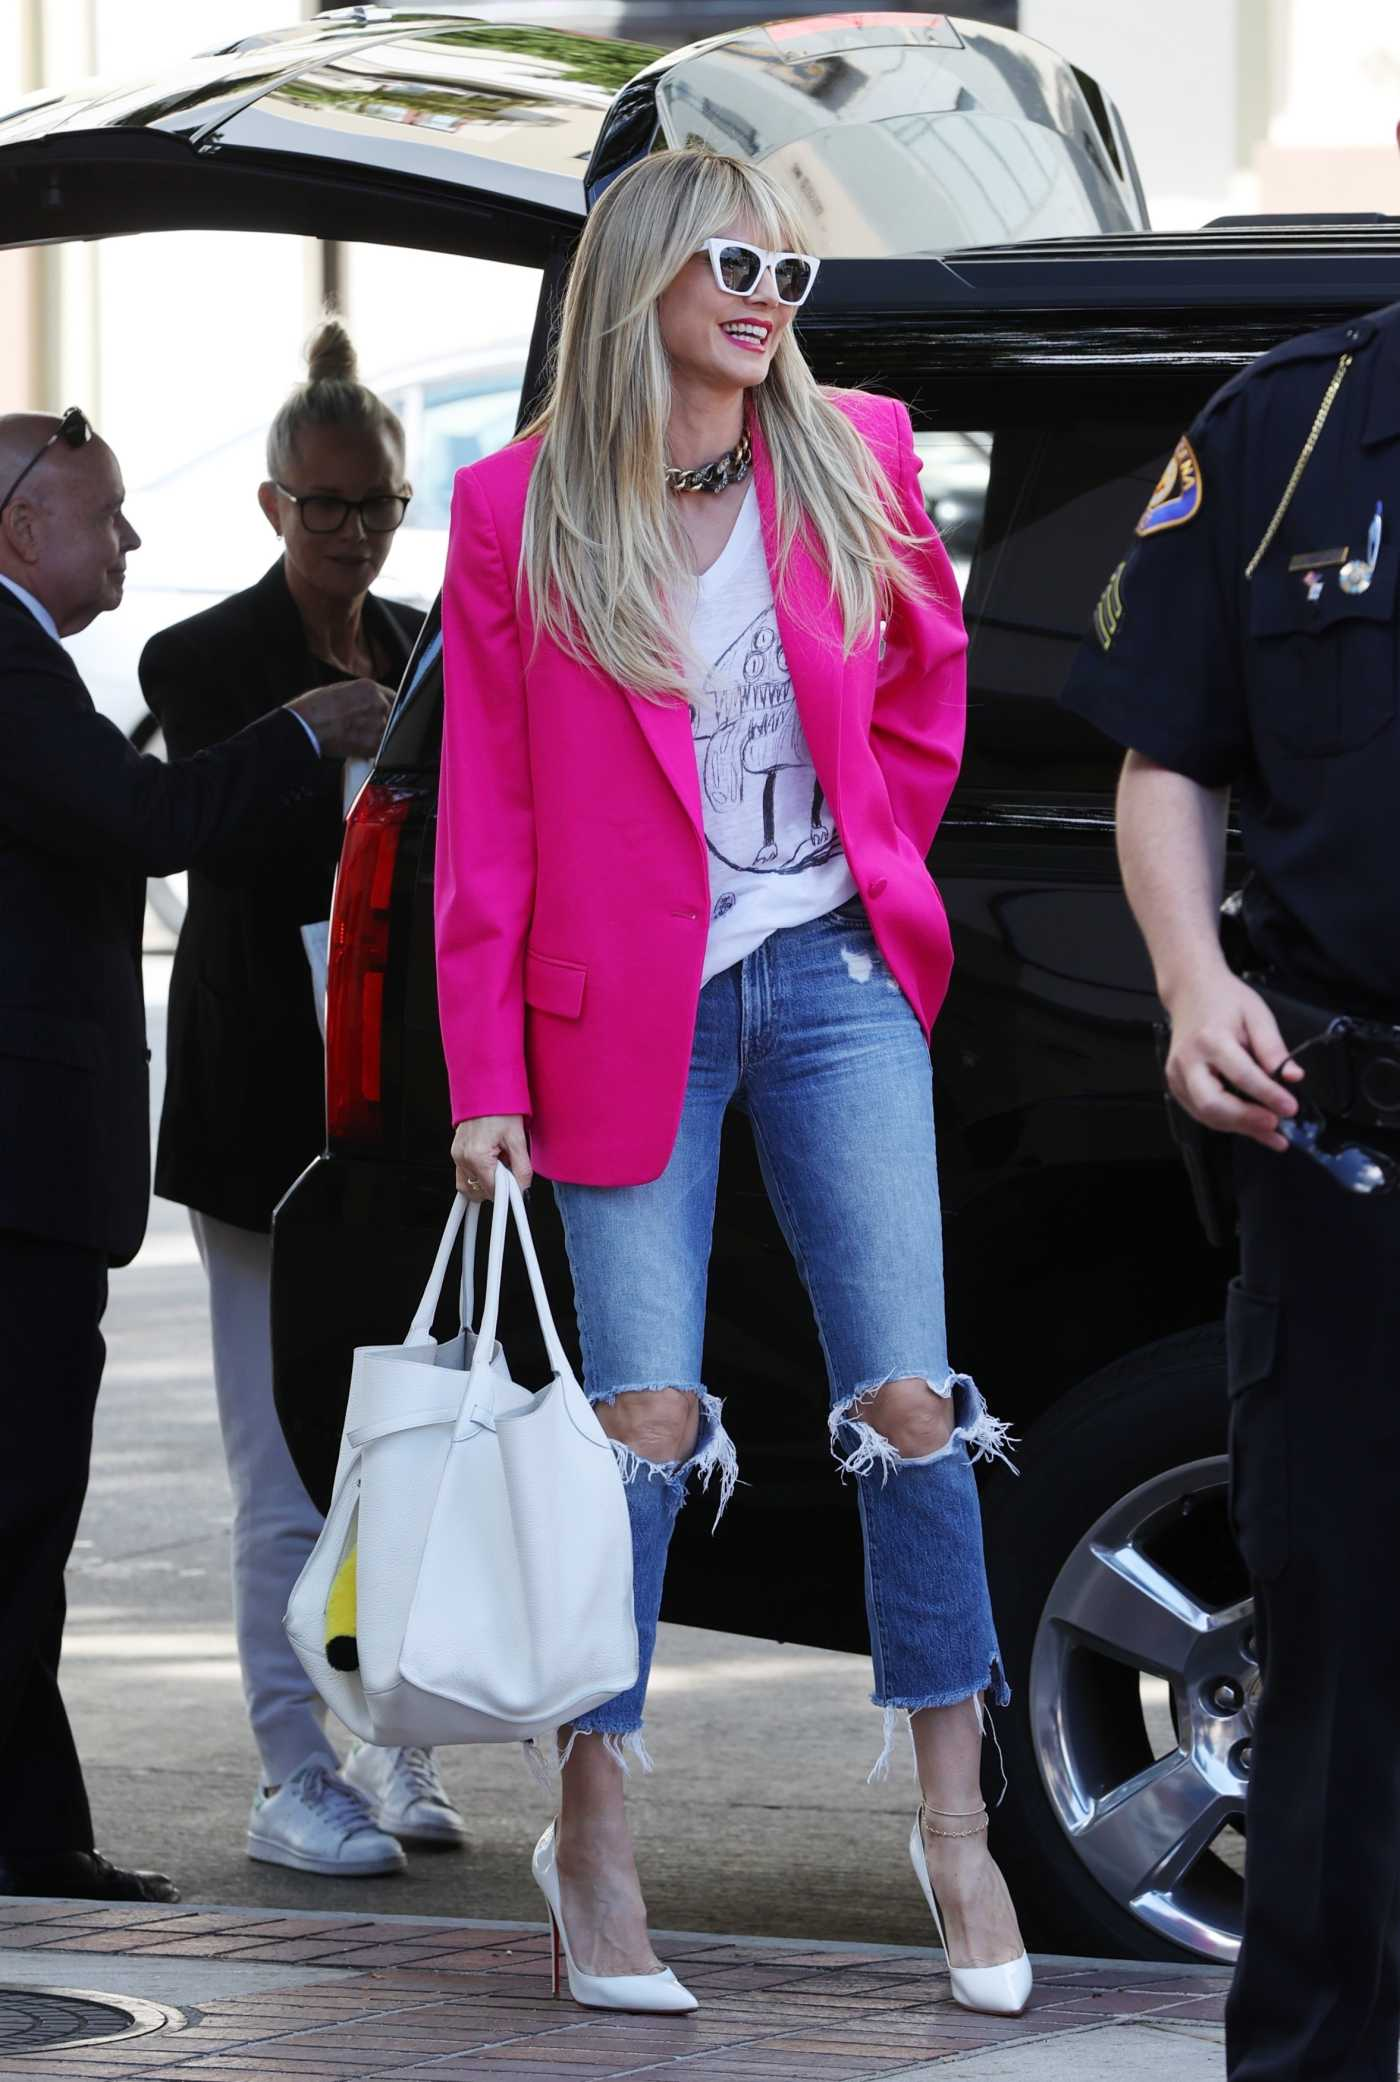 Heidi Klum in a Pink Blazer Arrives at America's Got Talent in Pasadena 03/08/2020